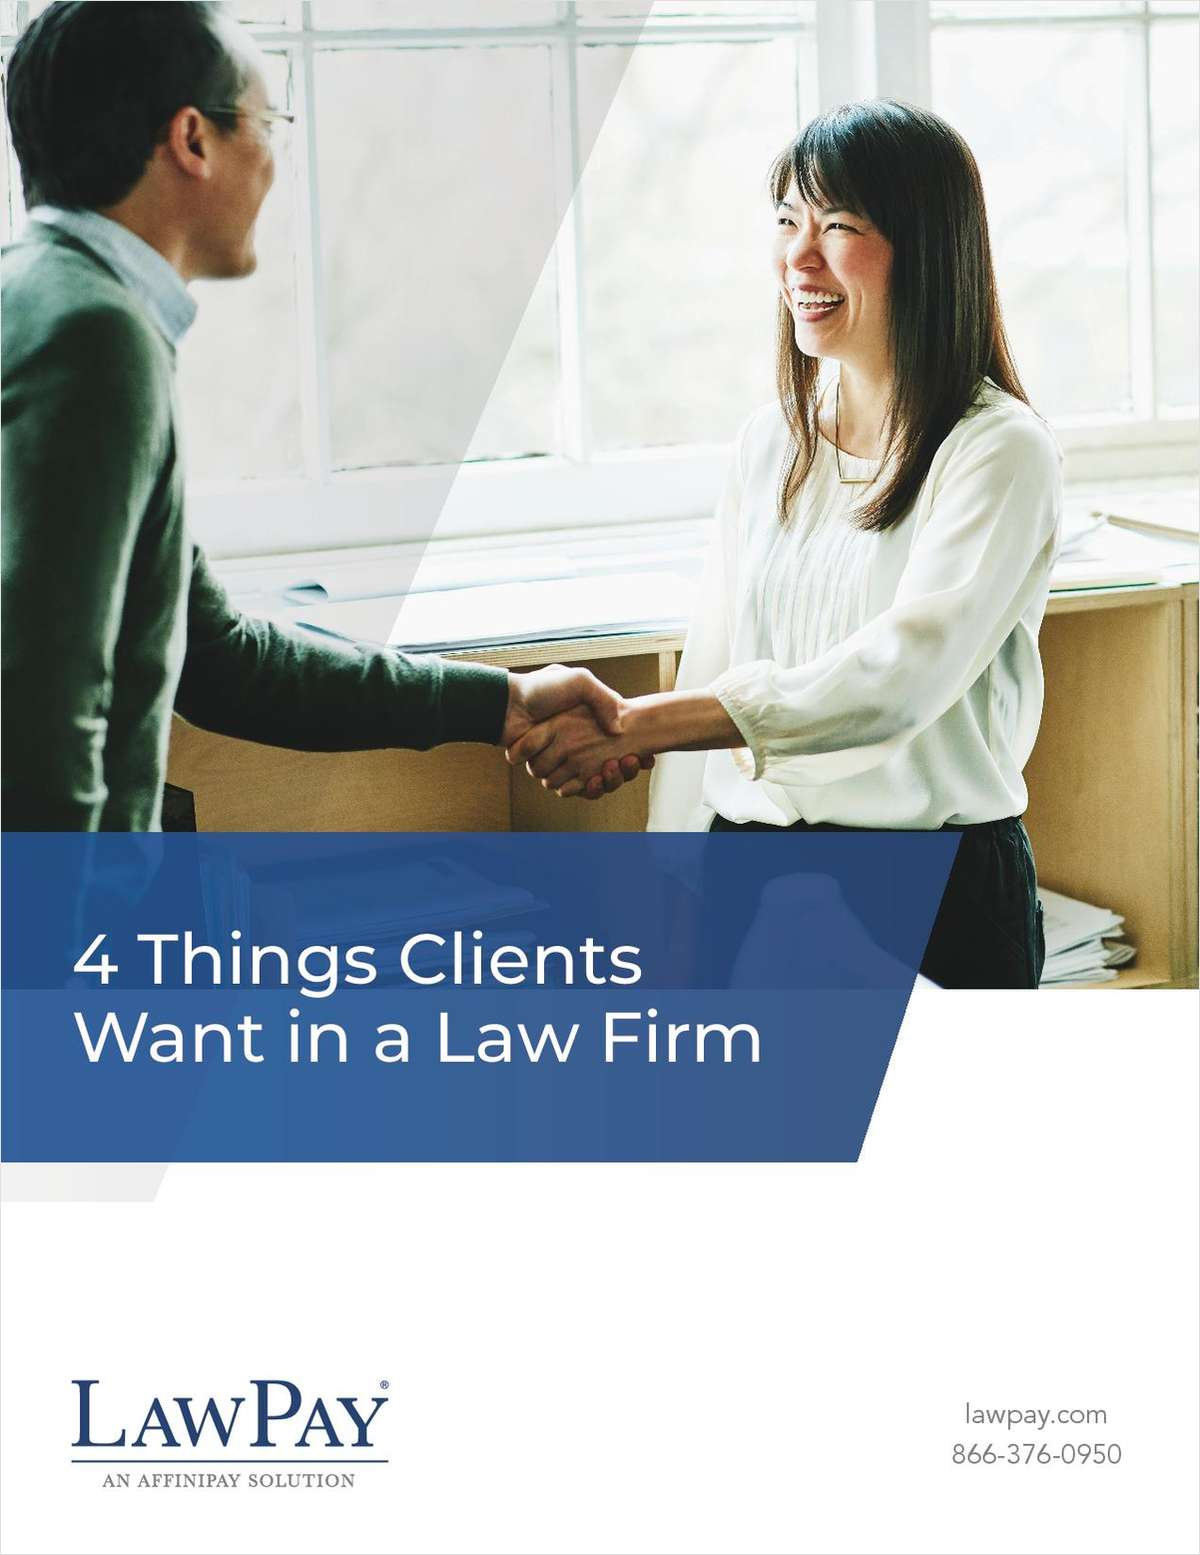 4 Things Clients Want in a Law Firm